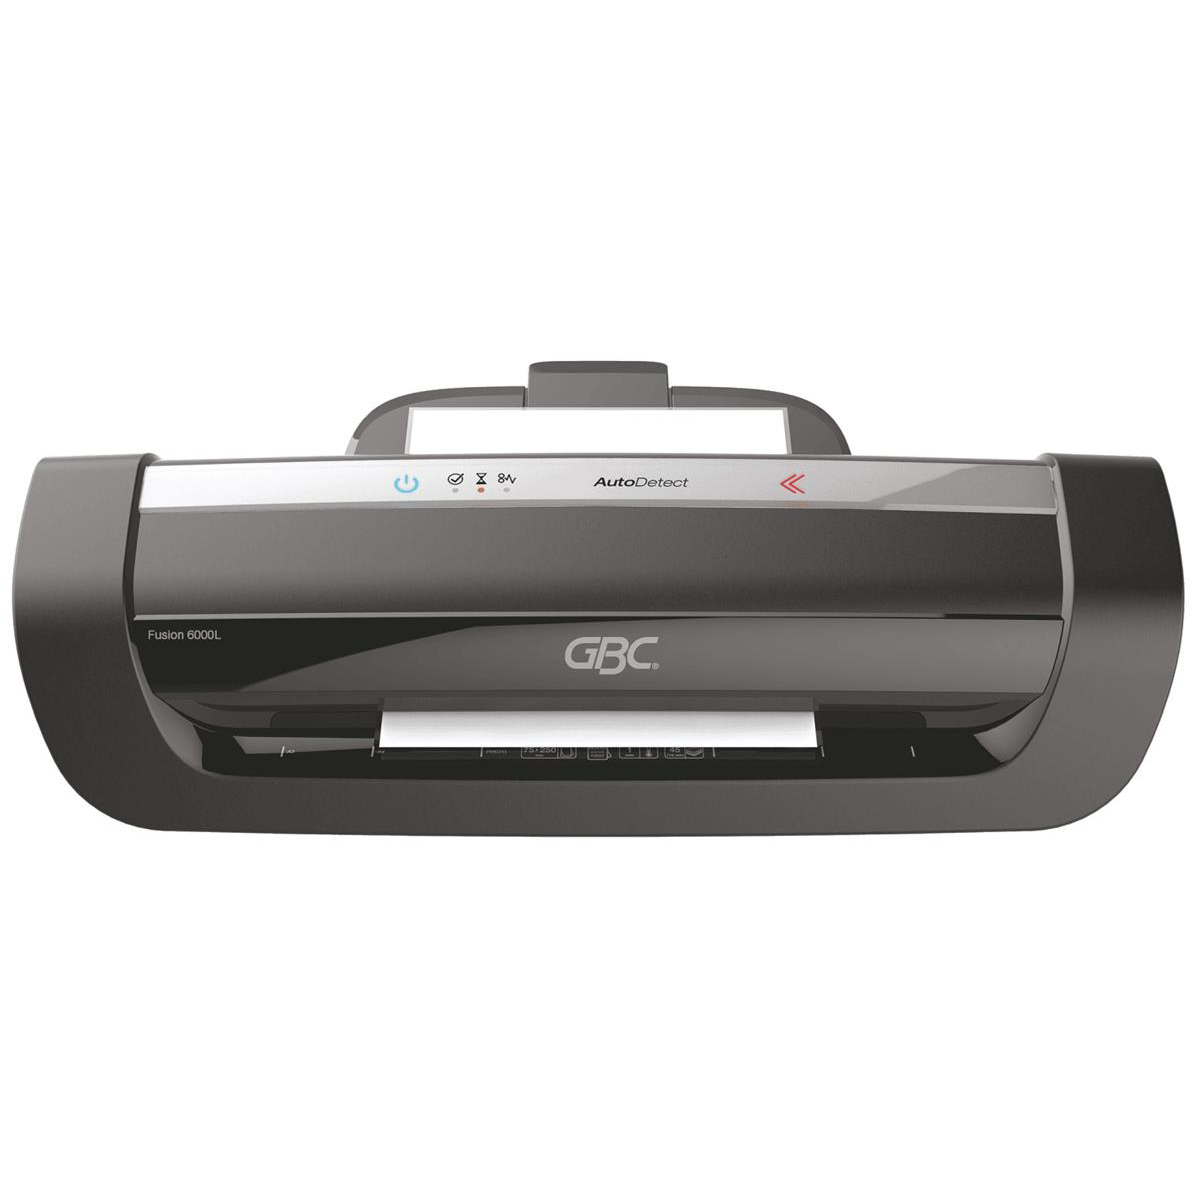 Laminating Machines GBC Fusion 6000L A3 Laminator High Speed Up to 500 Micron Ref 4402134